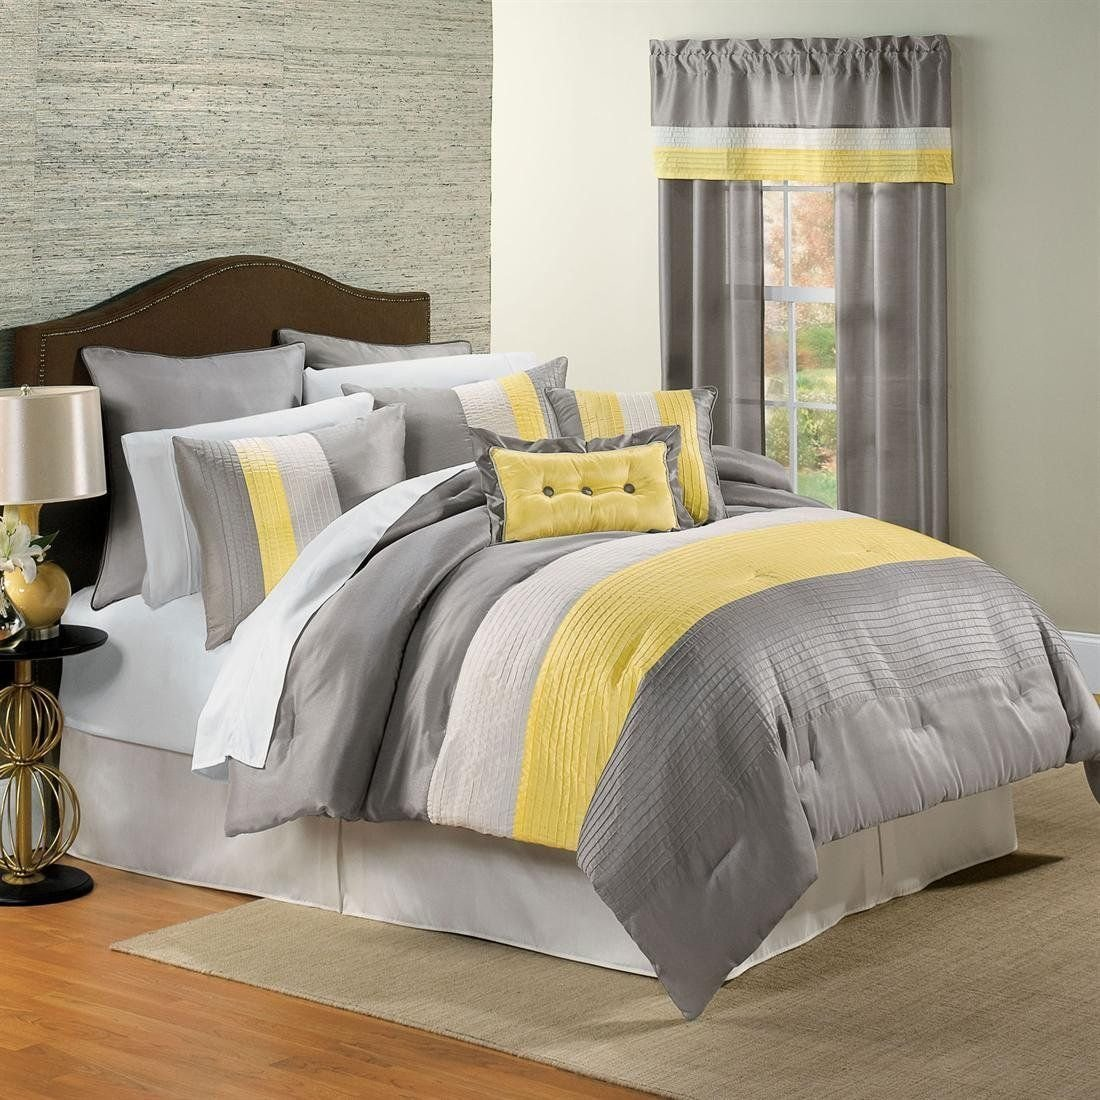 Best Yellow And Grey Bedding On Pinterest Comforter Sets With Pictures